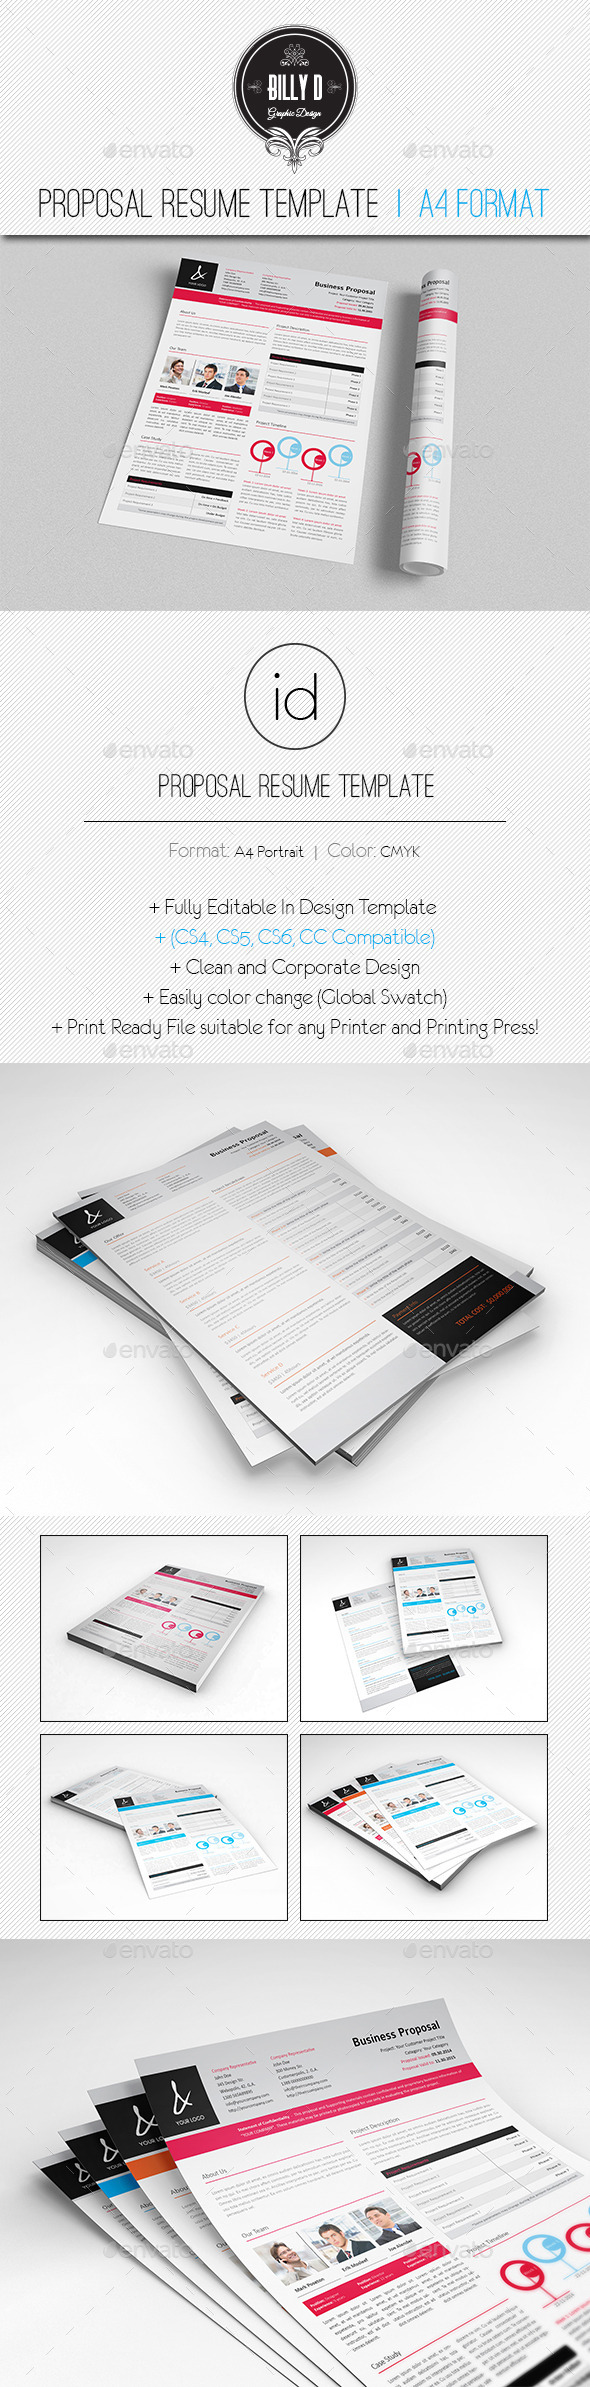 GraphicRiver Proposal Resume Template 8888930